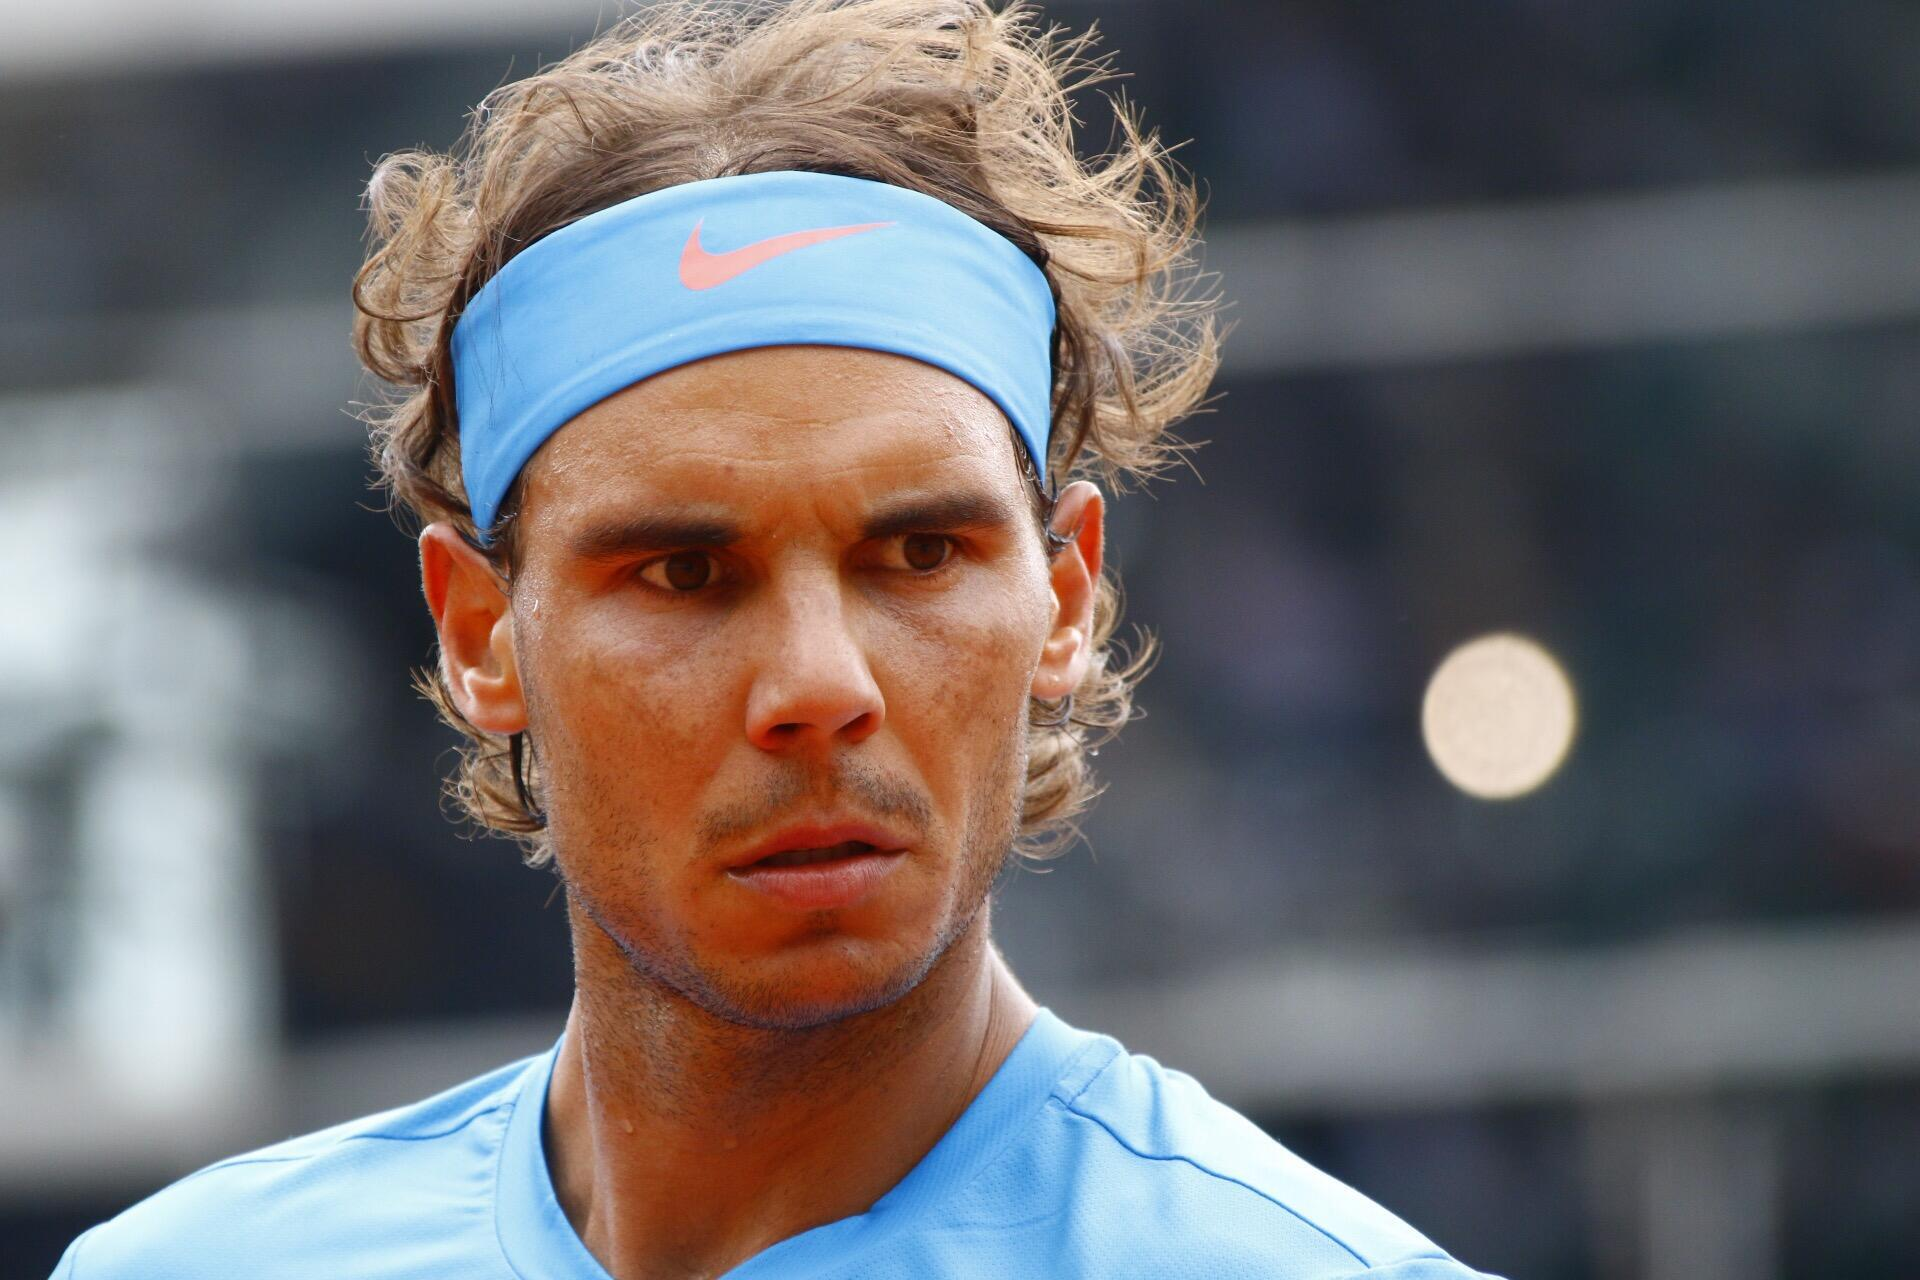 Rafael Nadal is hoping to win a third title at Wimbledon